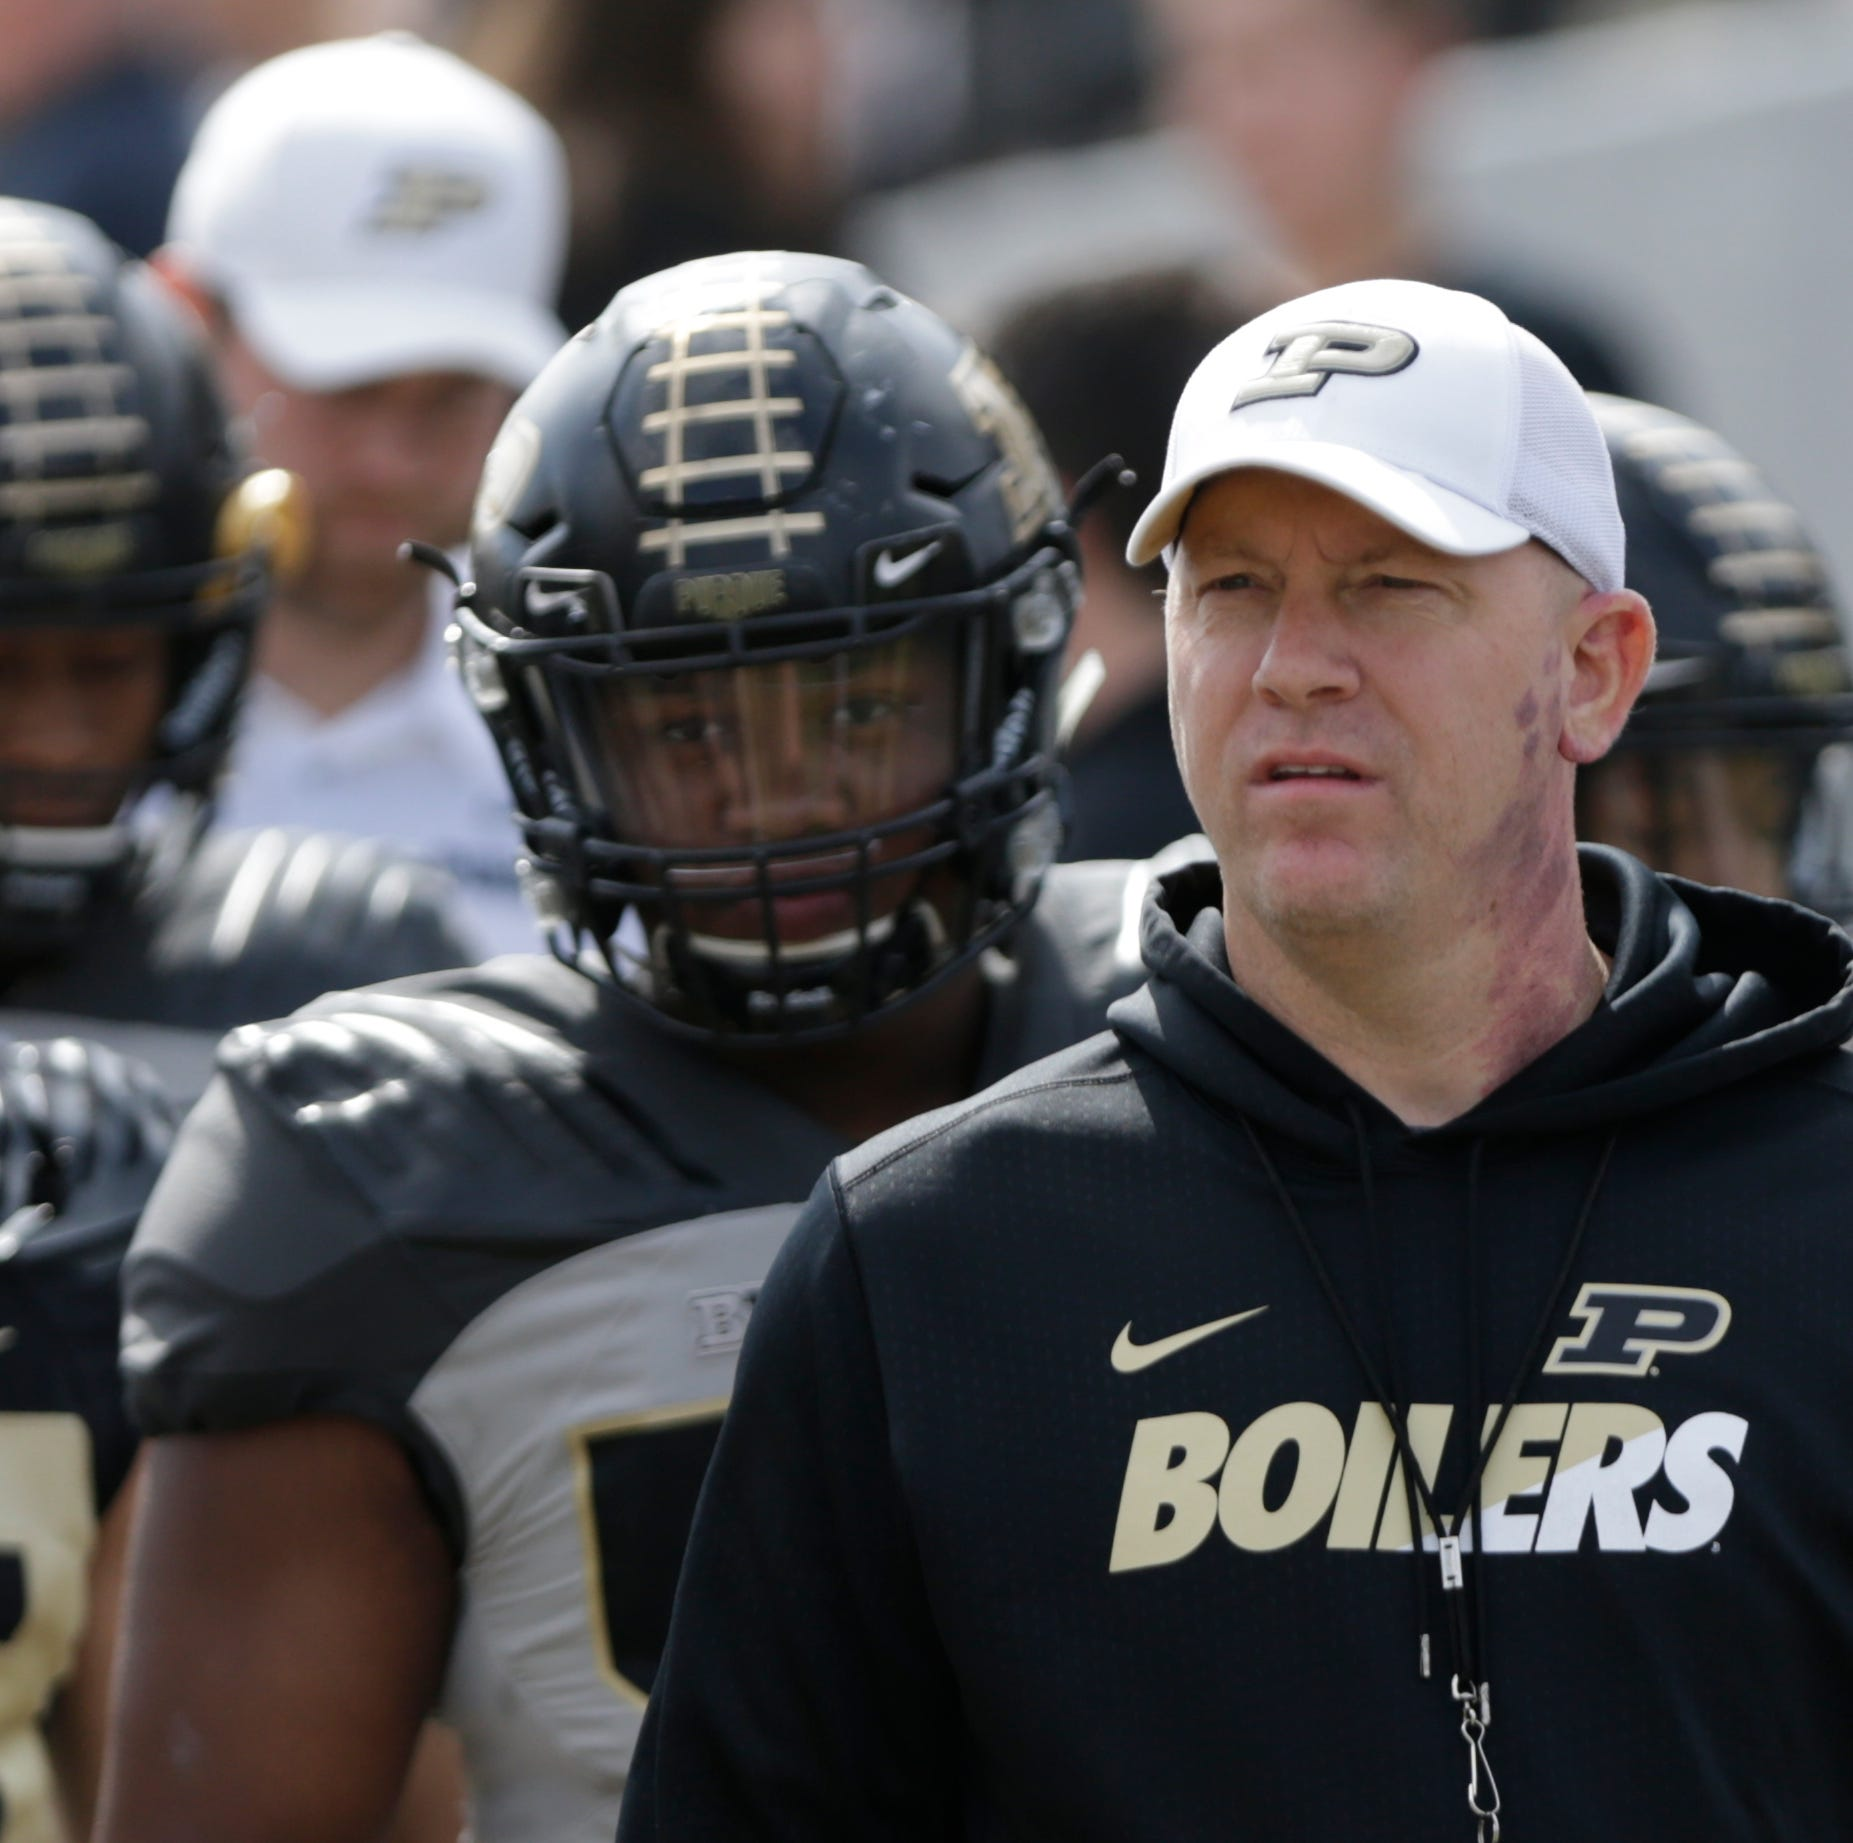 Purdue football coach Jeff Brohm awarded one-year contract extension